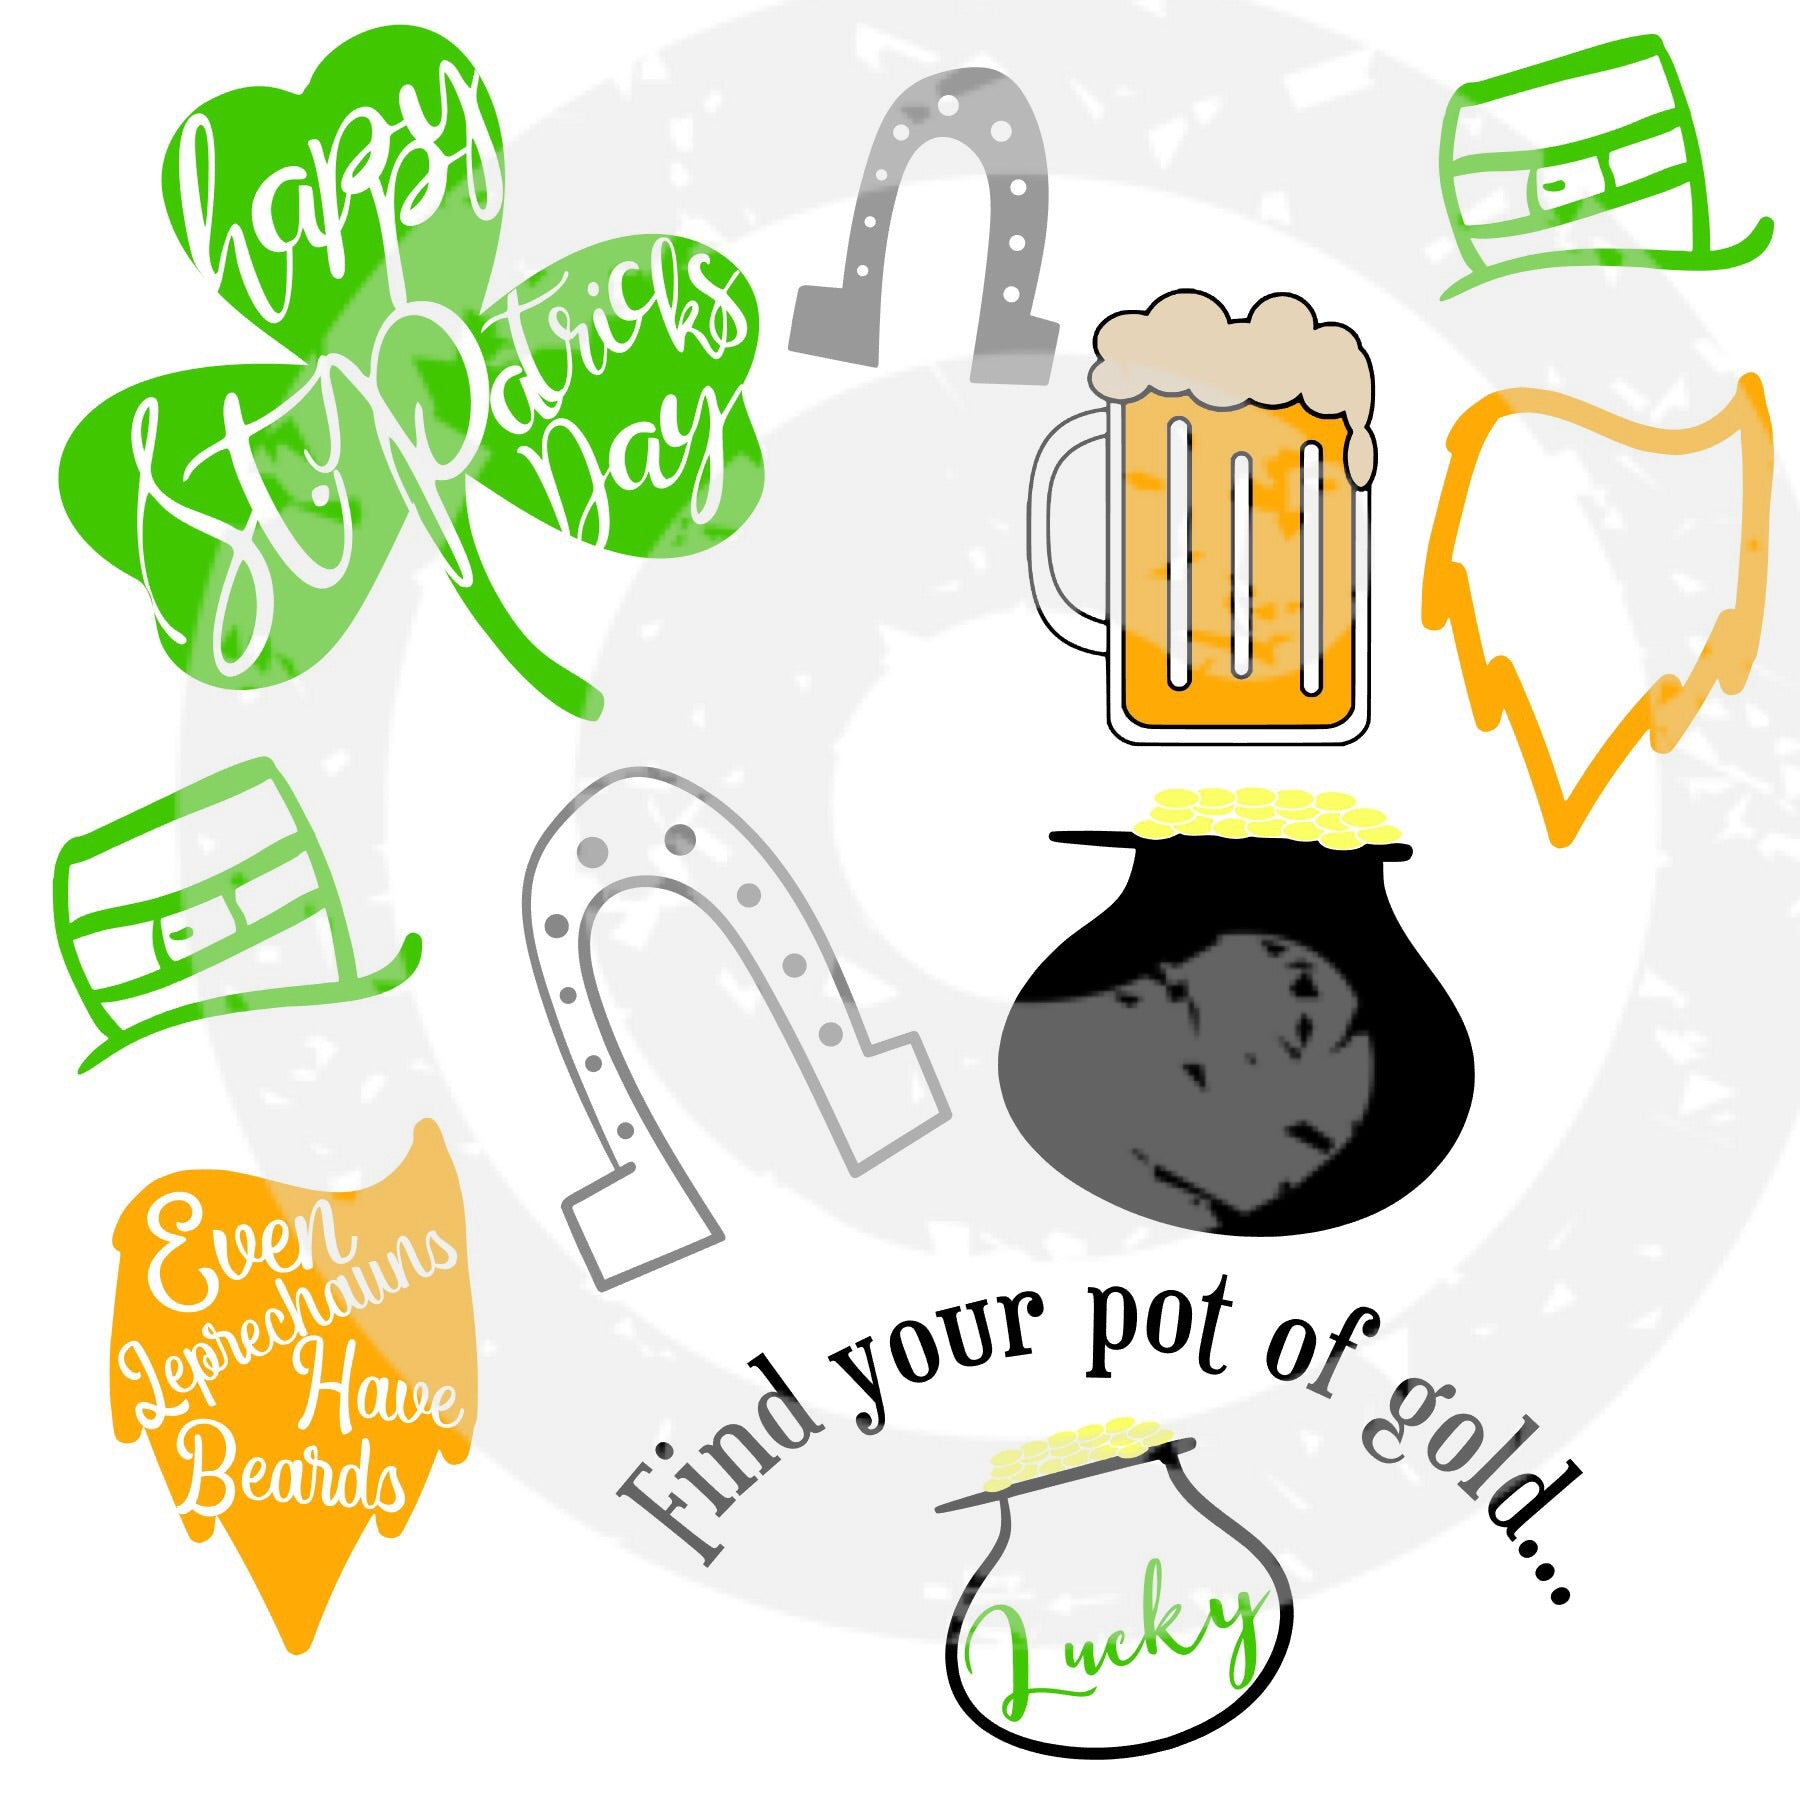 SVG St. Patrick's Day SVG Bundle - JPIBlanks.com